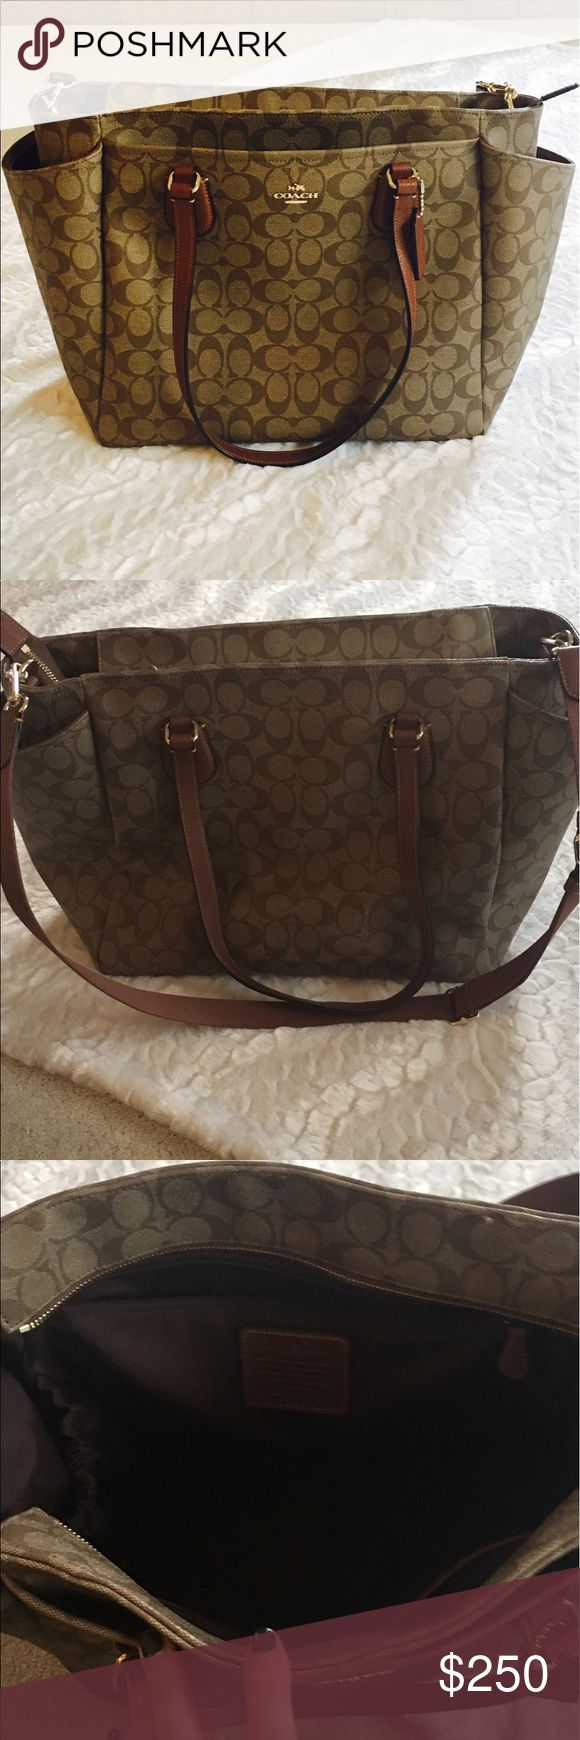 Coach travel bag Authentic coach genuine leather, five inside pockets plus inside side pockets for shoes, outside side pockets and outside front pocket, adjustable strap and comes with laptop protector. 16Lx6.5Wx13H. Slightly Used but no imperfections Coach Bags Travel Bags